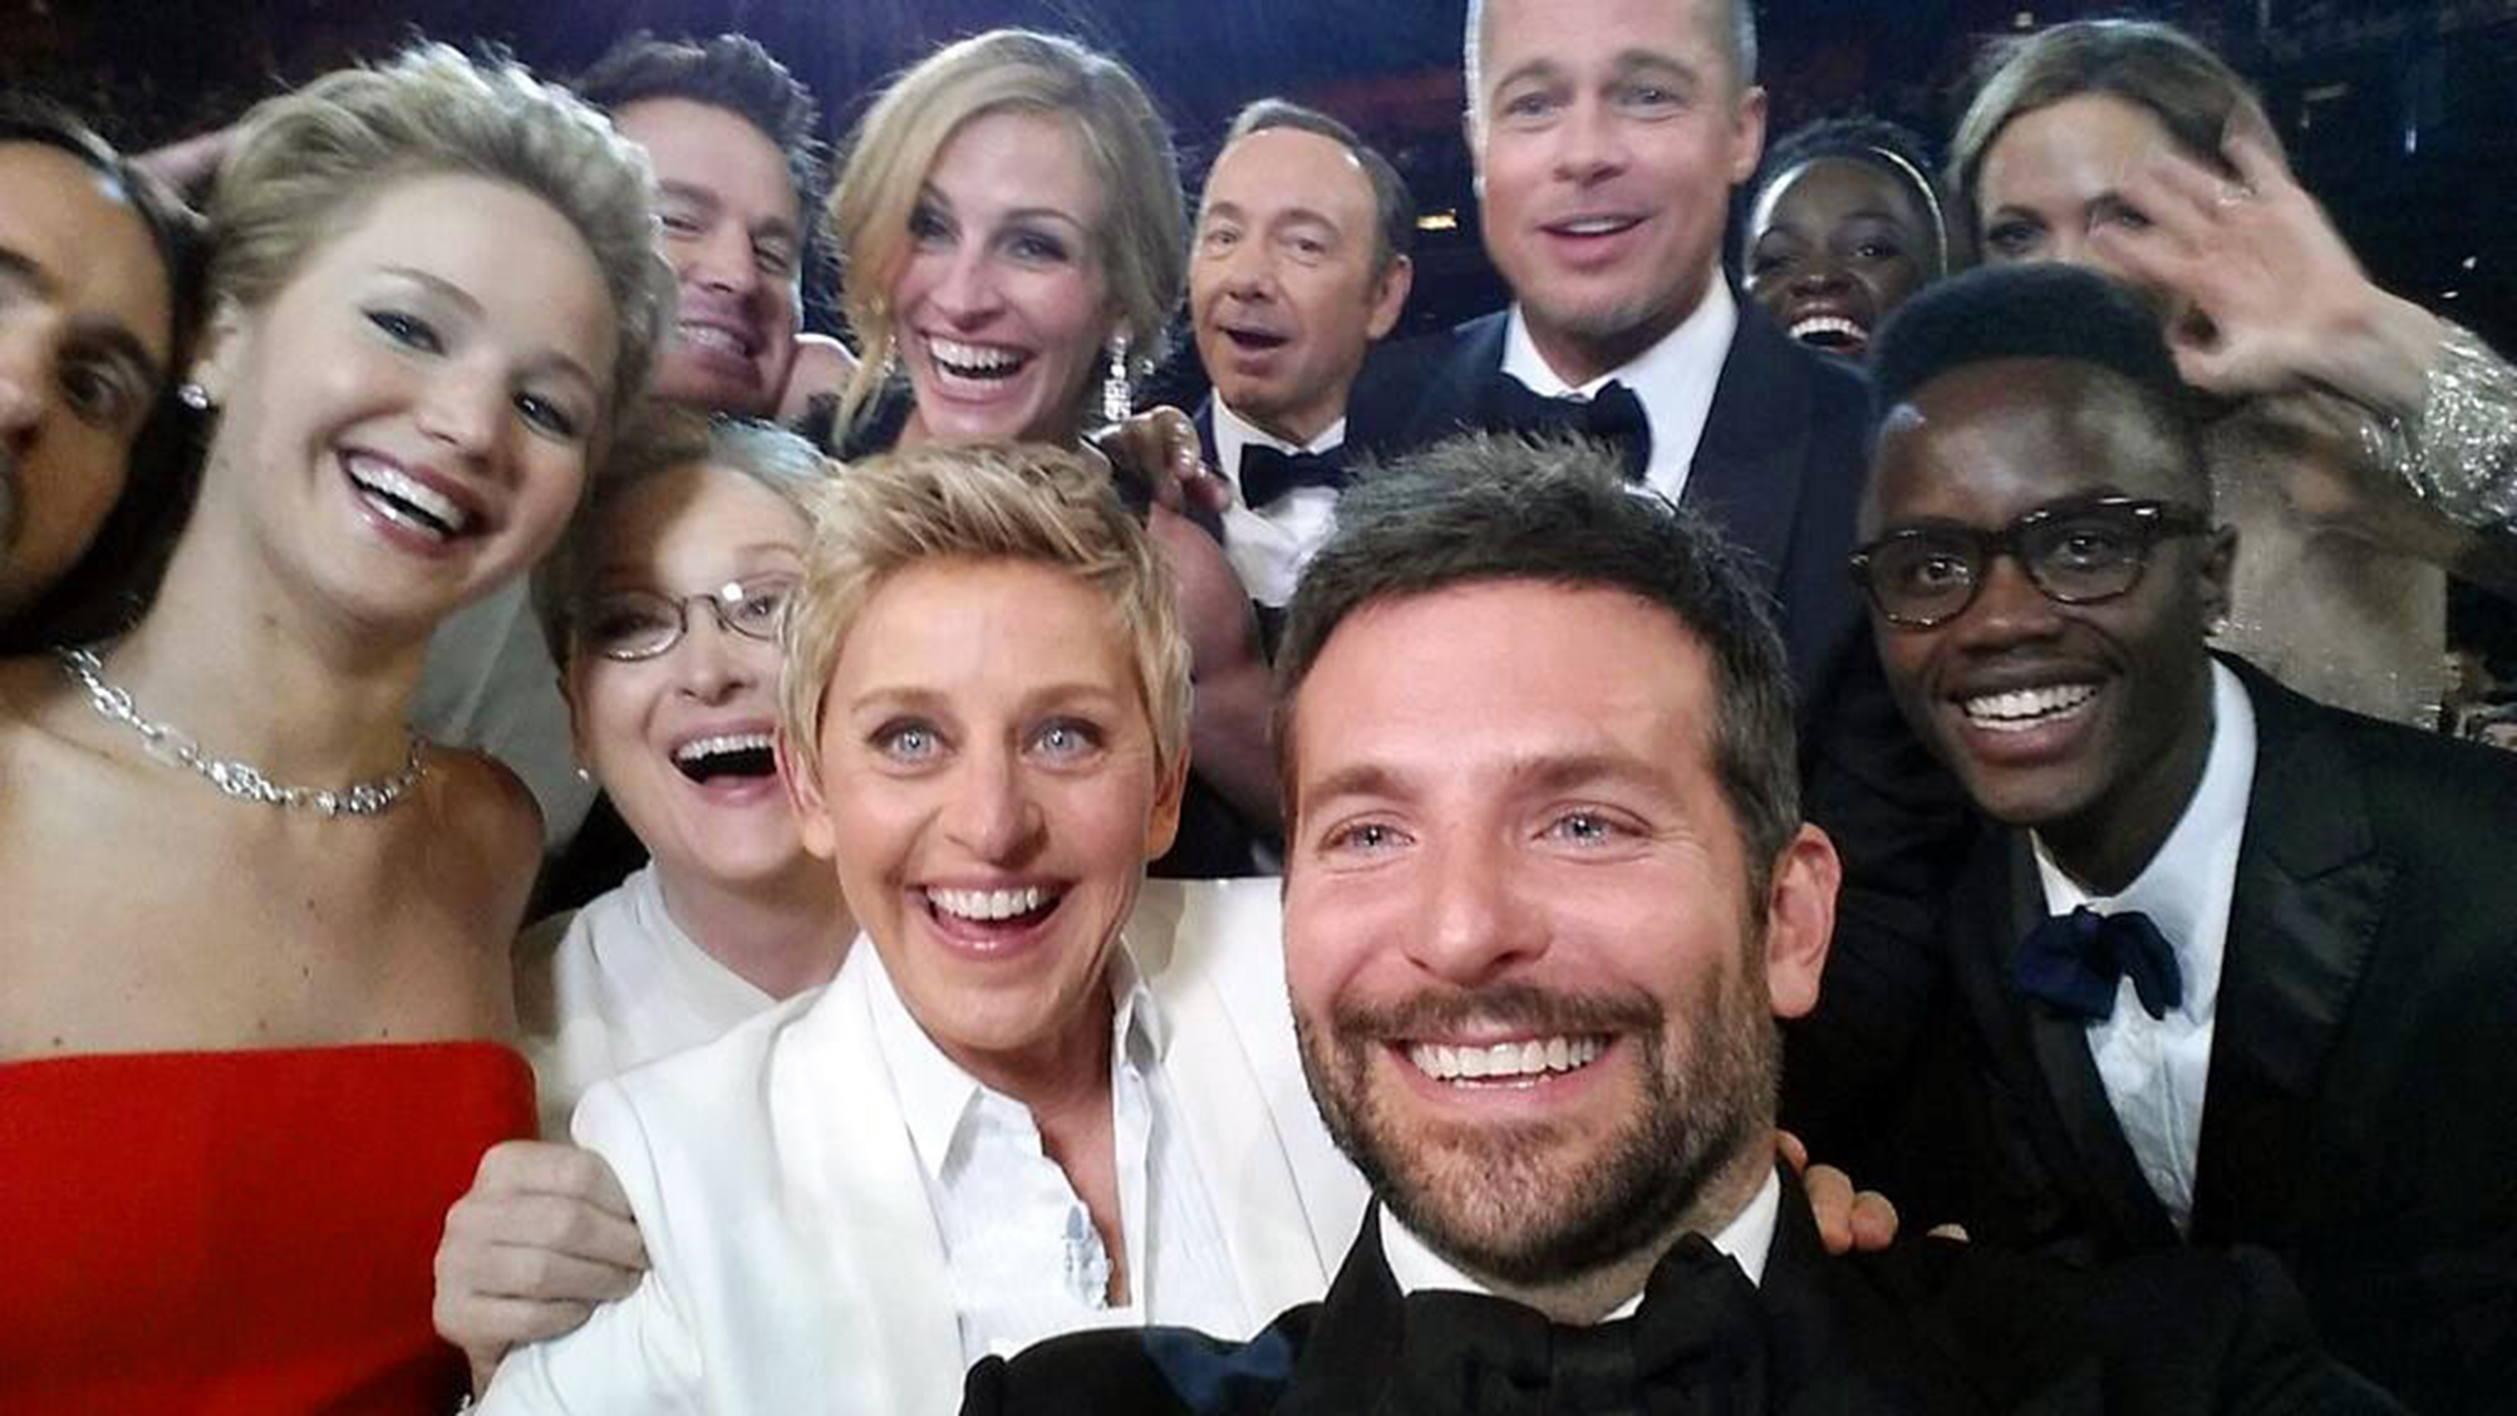 This image released by Ellen DeGeneres shows actors, front row from left, Jared Leto, Jennifer Lawrence, Meryl Streep, Ellen DeGeneres, Bradley Cooper, Peter Nyong'o Jr. and, second row, from left, Channing Tatum, Julia Roberts, Kevin Spacey, Brad Pitt, Lupita Nyong'o and Angelina Jolie as they pose for a  selfie  portrait on a cell phone during the Oscars at the Dolby Theatre on Sunday, March 2, 2014, in Los Angeles.